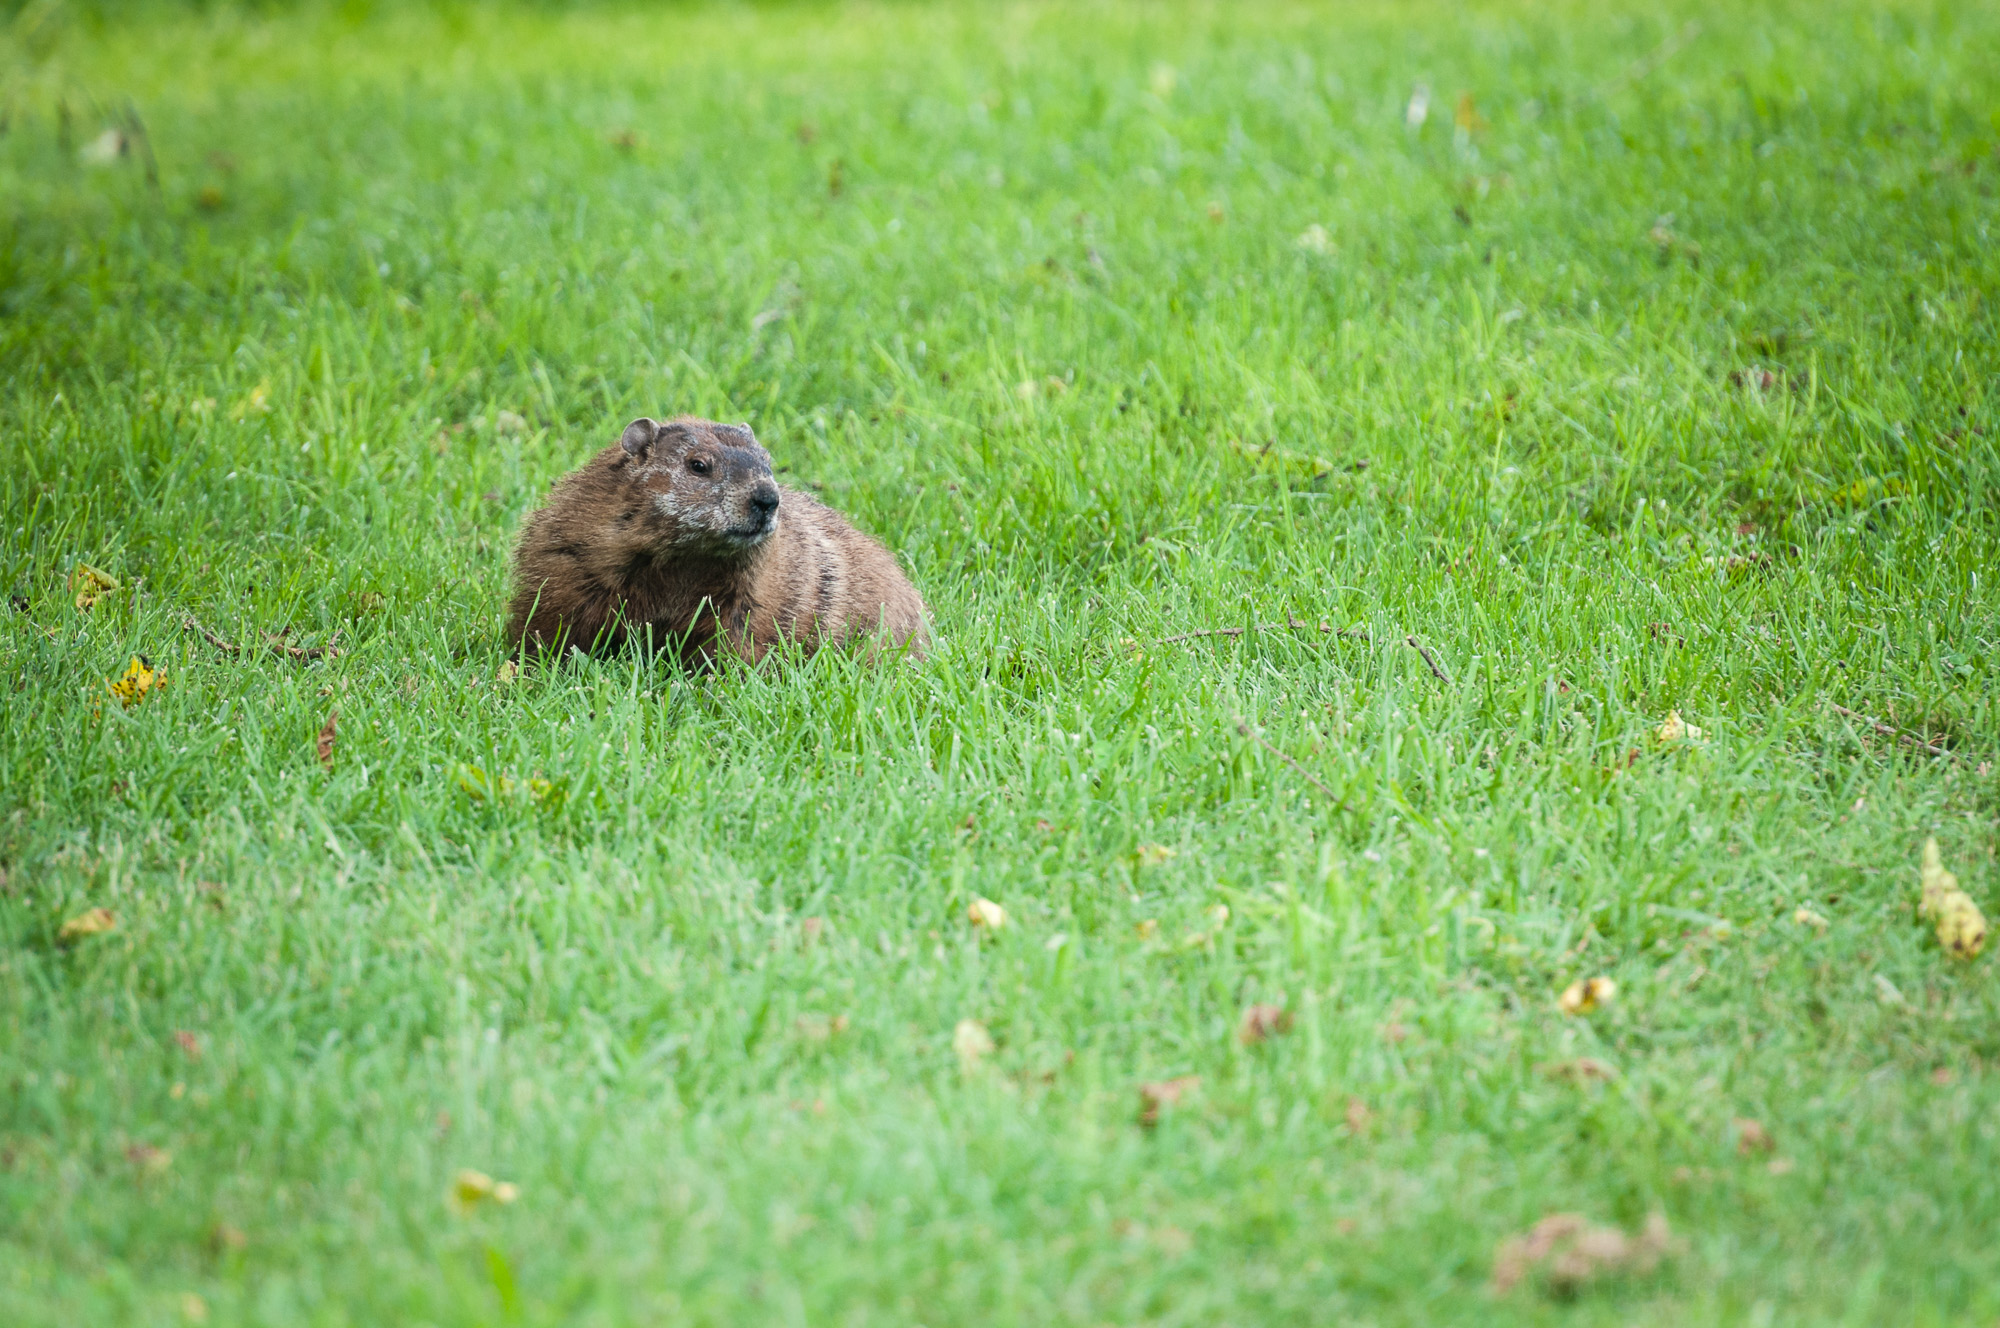 Groundhog facing the camera